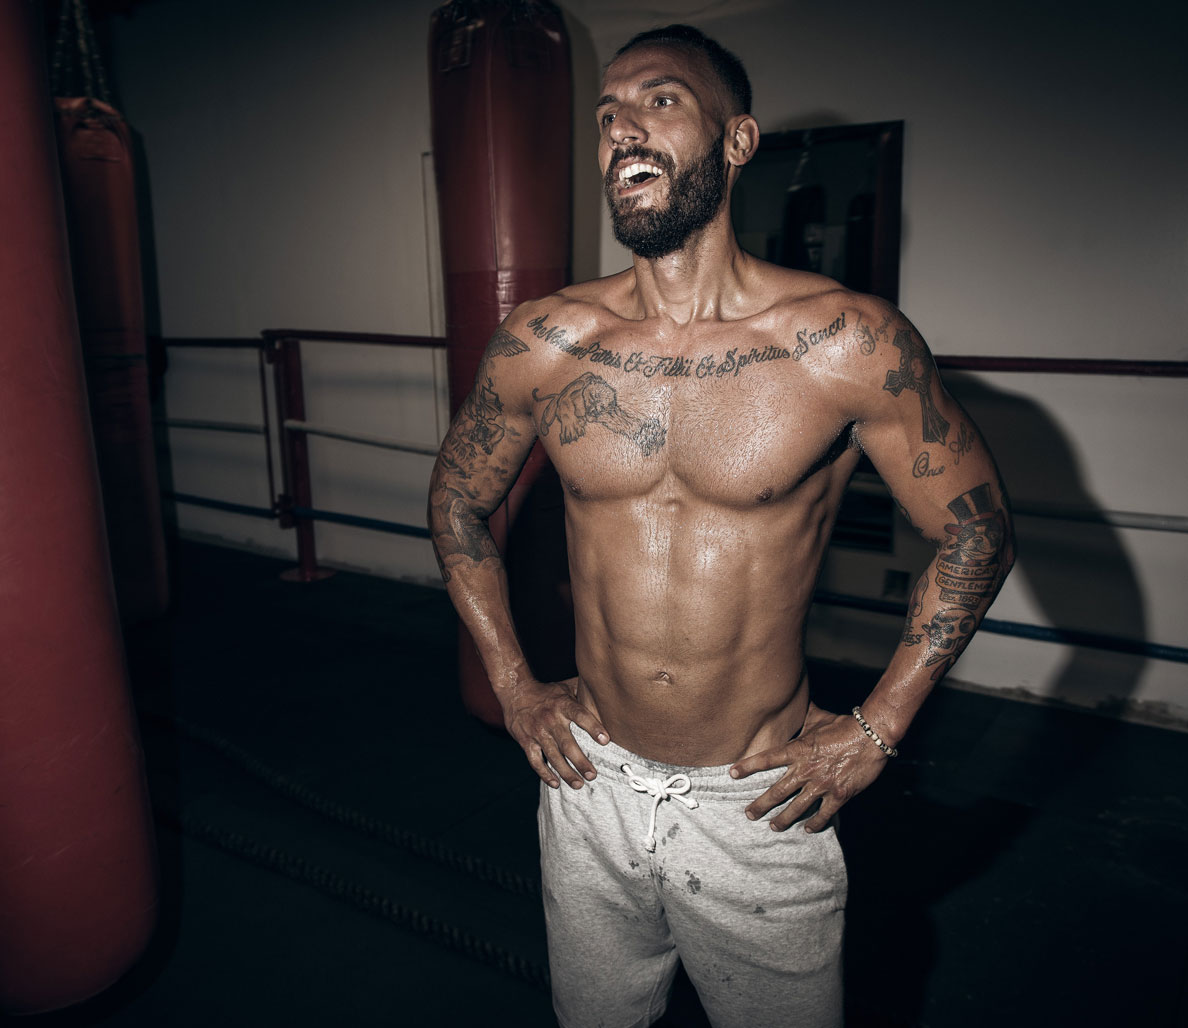 How to get super lean and ripped